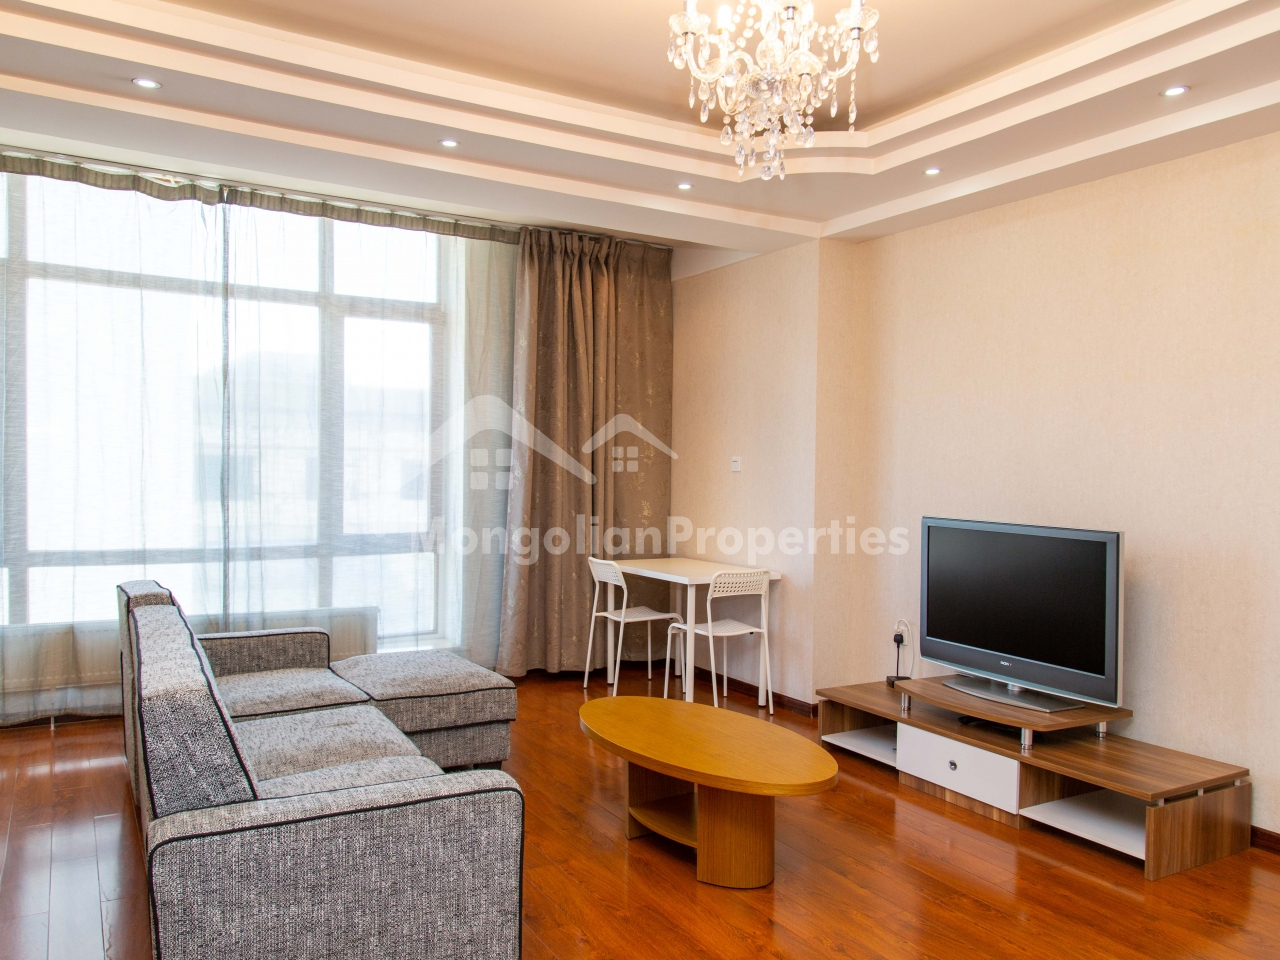 Spacious 1 bedroom apartment is for rent at the Elite tower